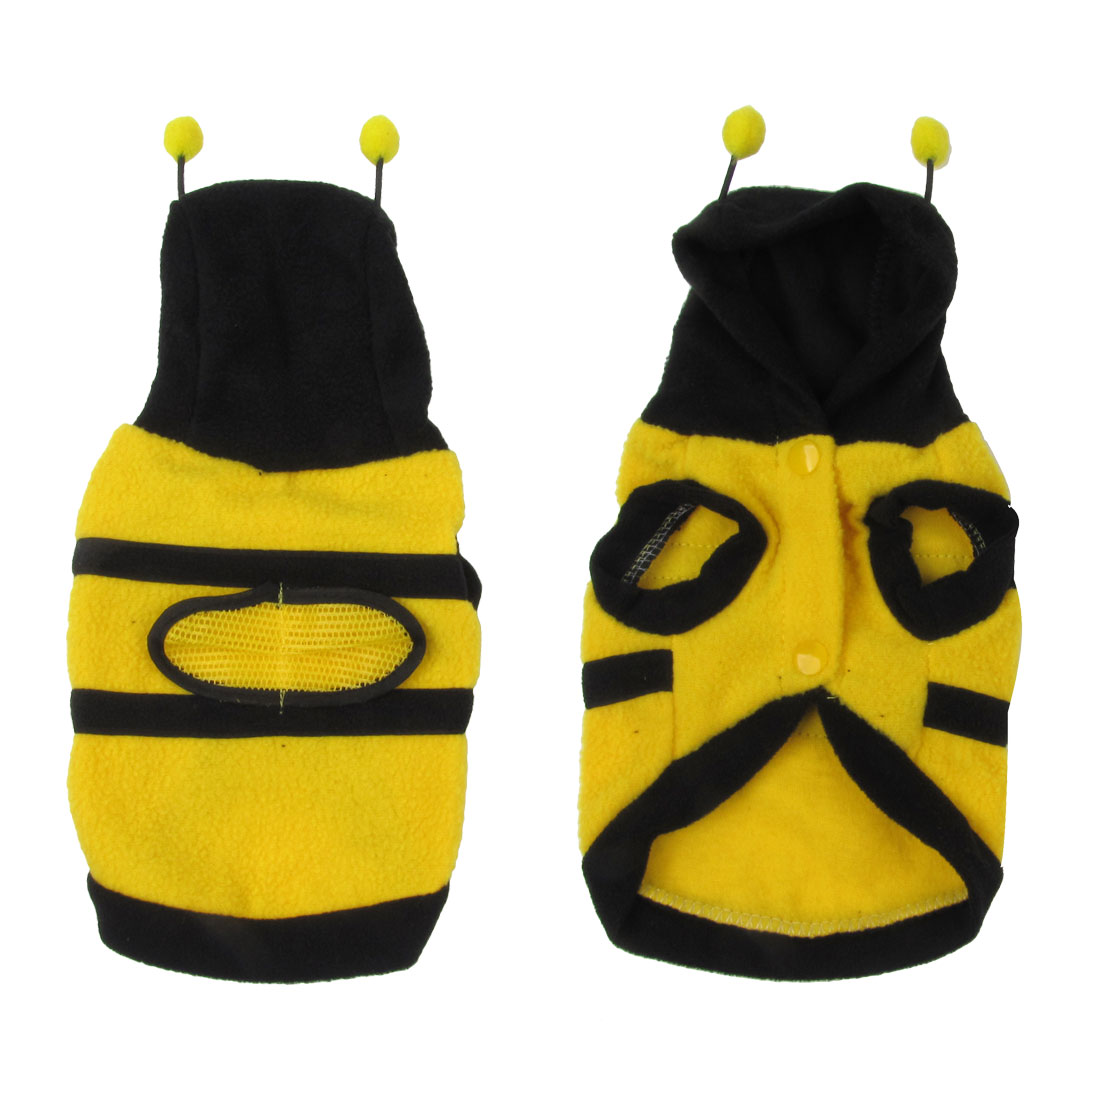 Winter Yellow Black Hoodie Bee Design Pet Doggie Dog Coat Sweater Size XS